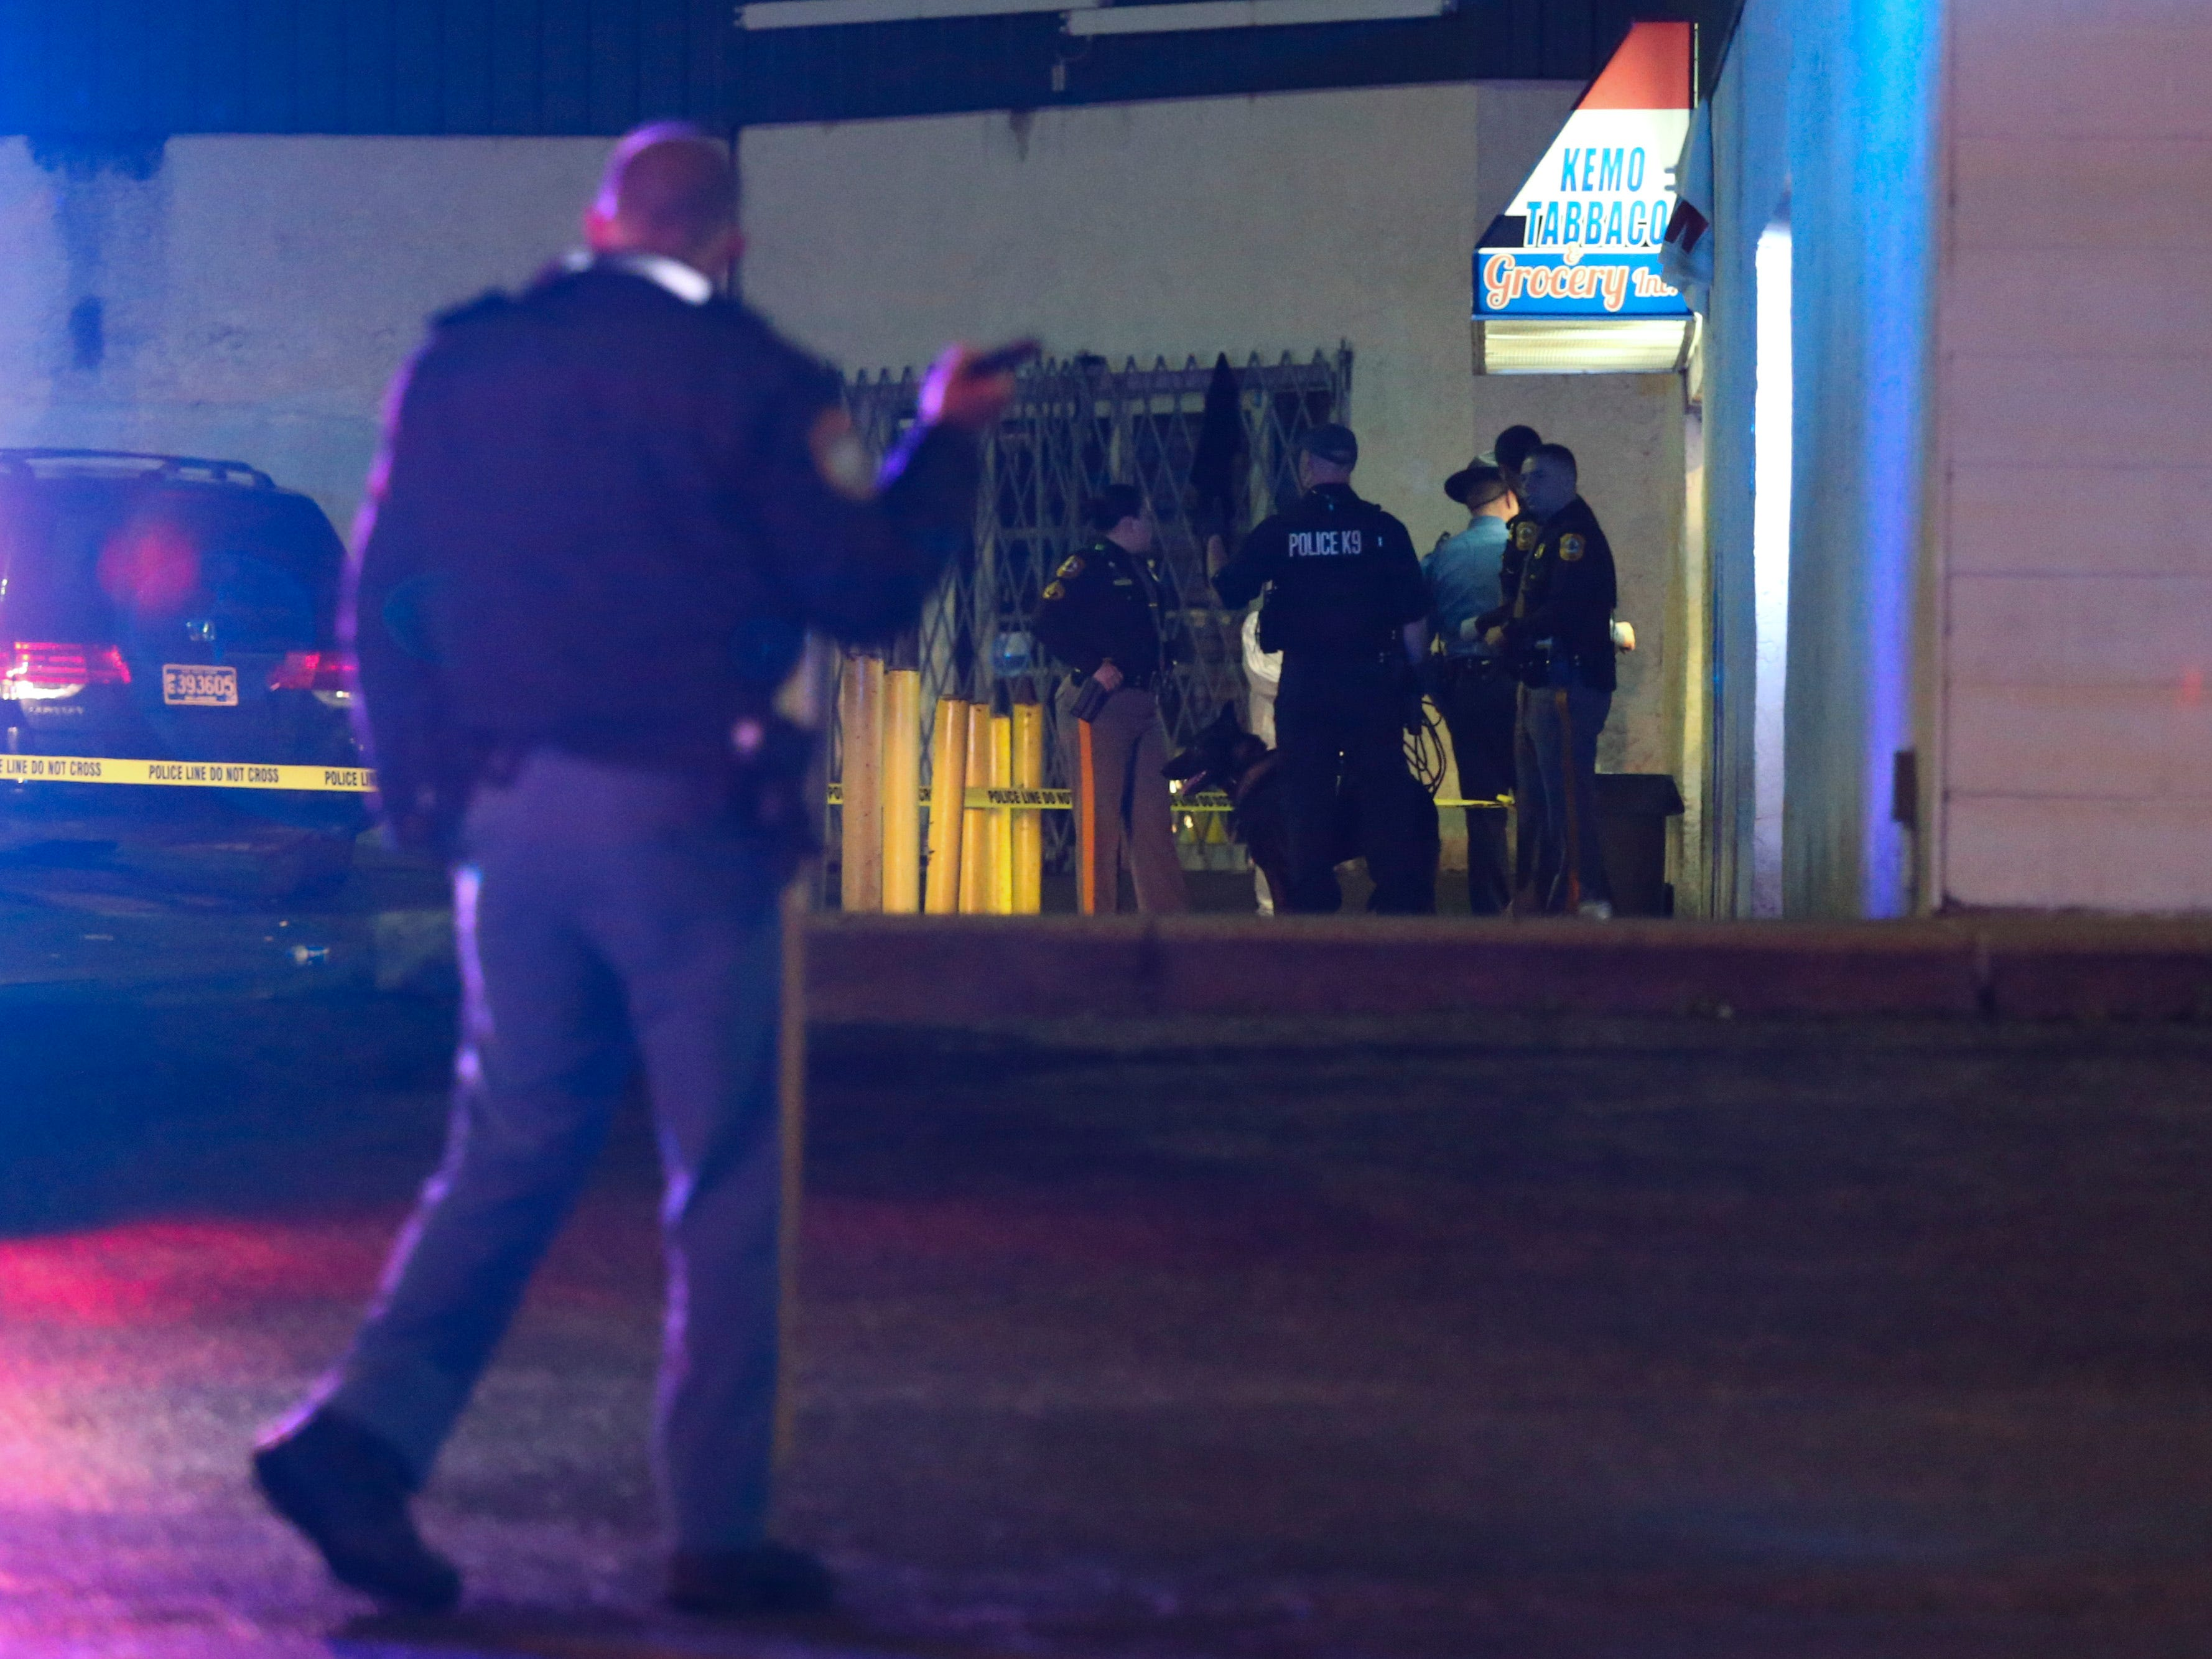 Police investigate after a report of a shooting with possibly two or more victims at the Star Center shopping plaza on New Castle Avenue near New Castle, reported about 9:15 pm Friday.